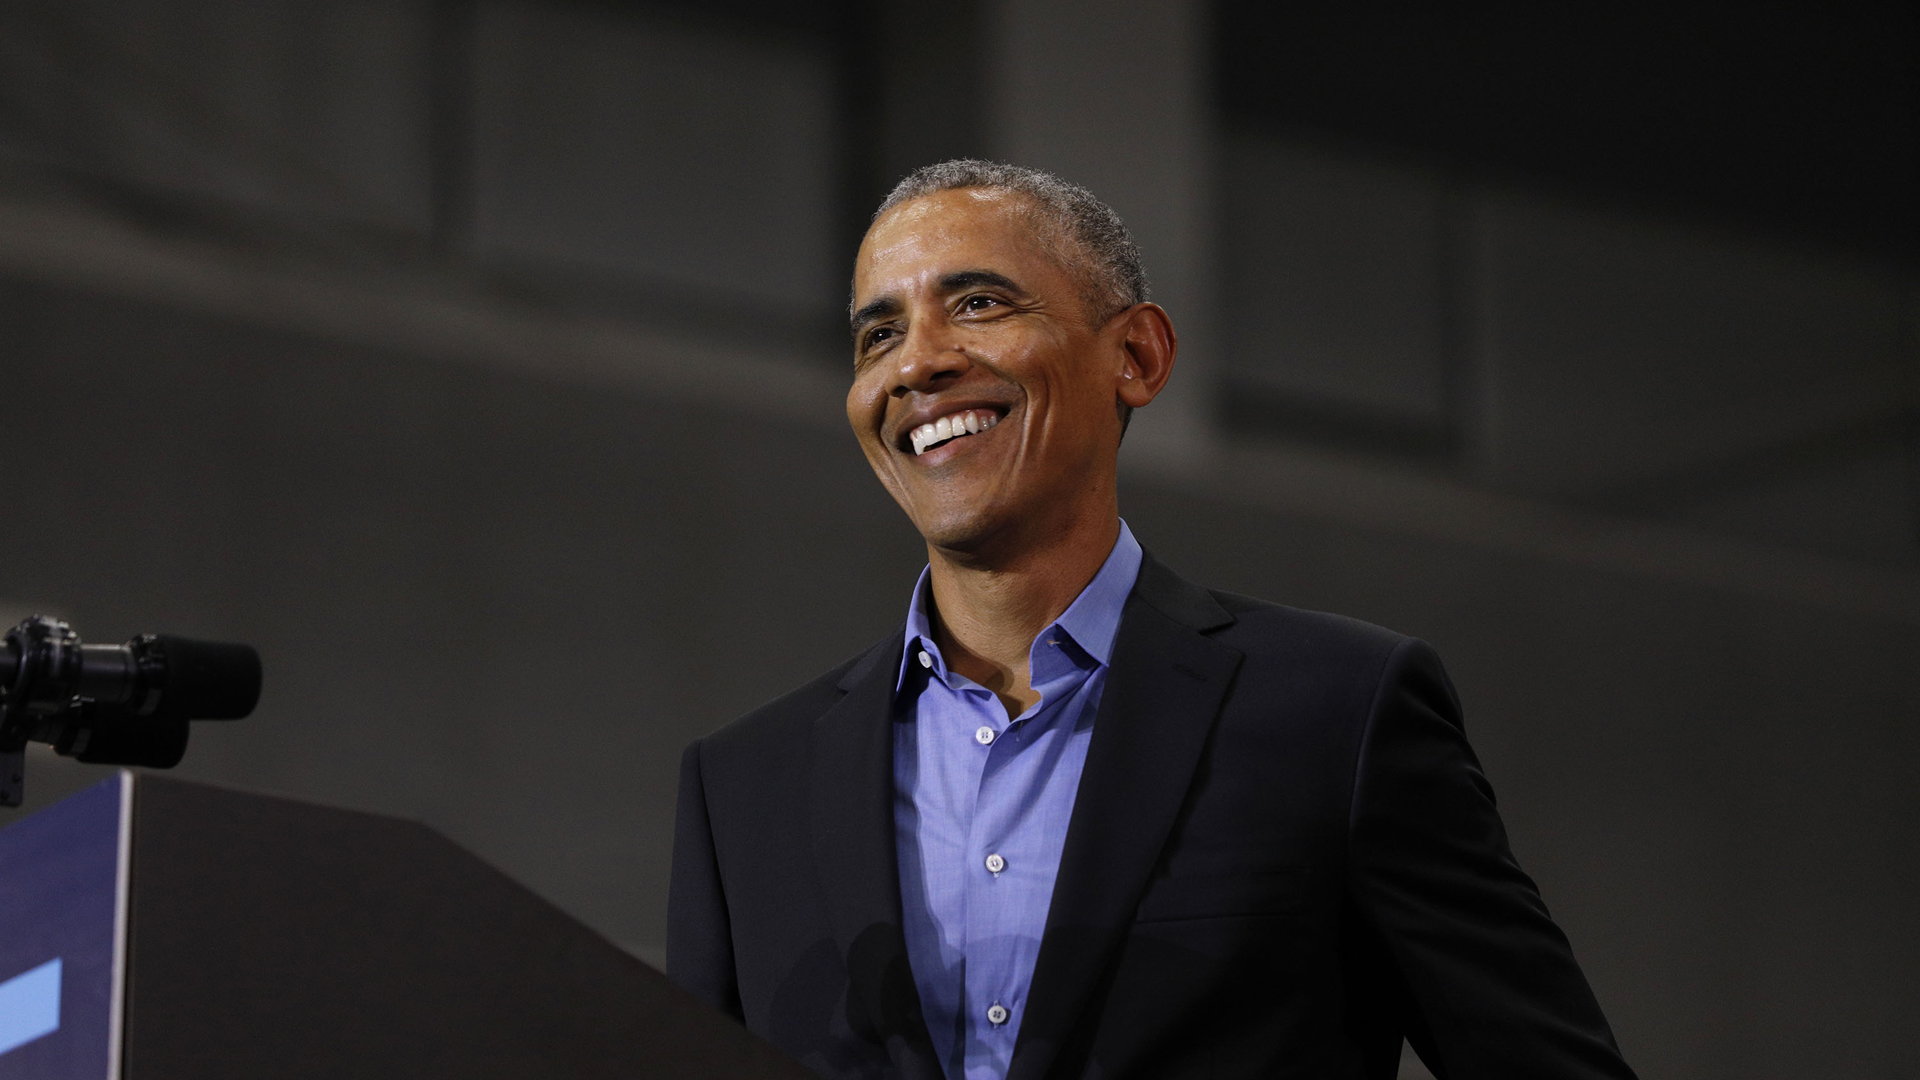 Former President Barack Obama speaks at a rally at Detroit Cass Tech High School on October 26, 2018 in Detroit. (Credit: Bill Pugliano/Getty Images)